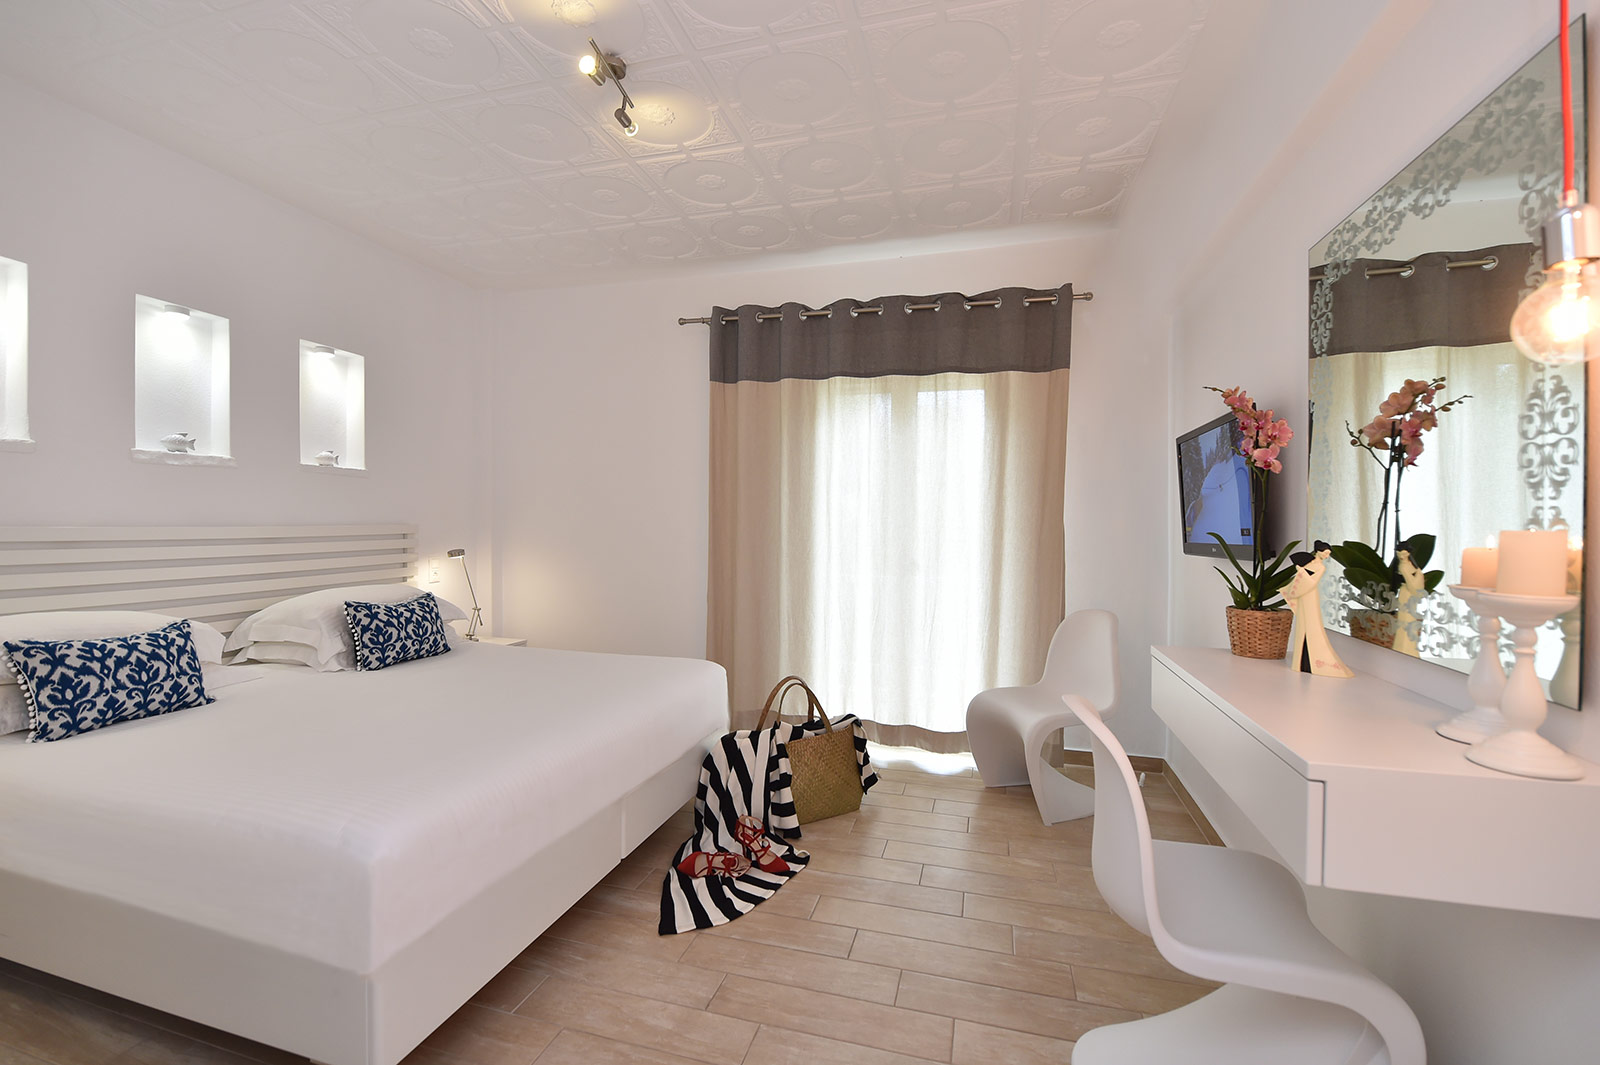 Apollon boutique hotel a small charming hotel in paros for Design boutique hotel kos